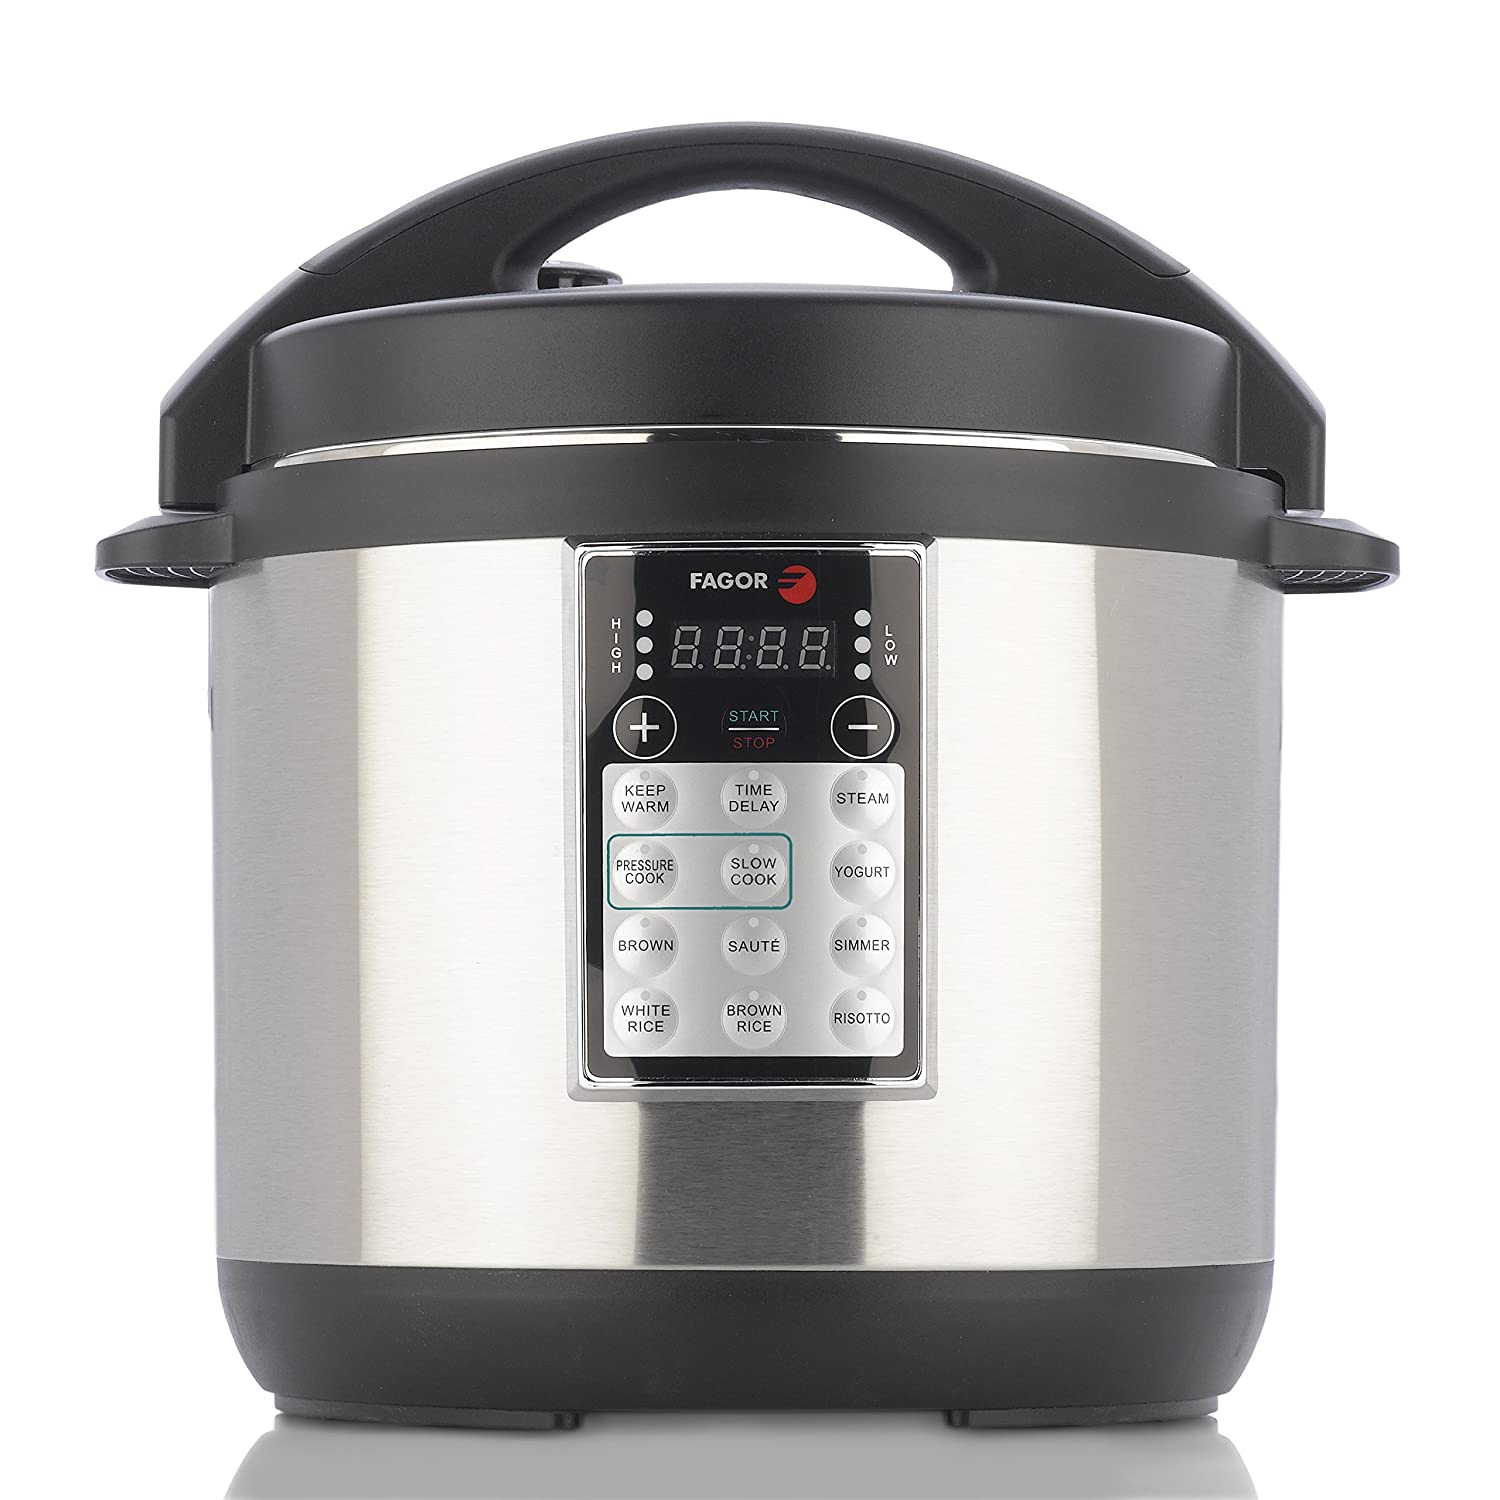 Amazon.com: Fagor LUX Multi-Cooker, 6 quart, Electric Pressure Cooker, Slow  Cooker, Rice Cooker, Yogurt Maker and more, Silver - 670041880: Kitchen &  Dining